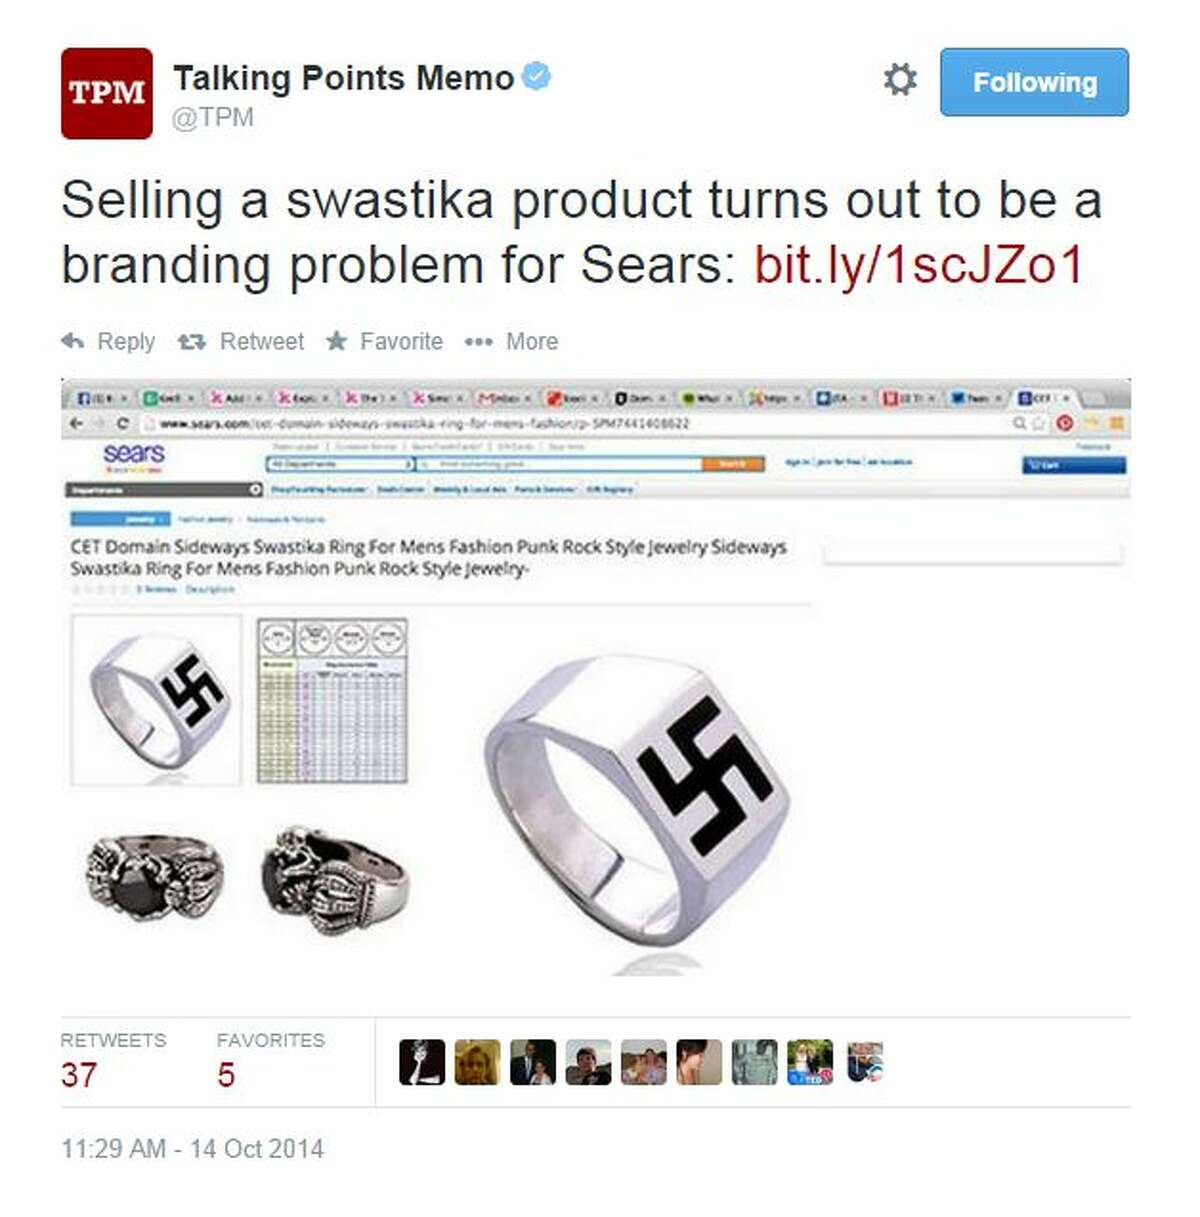 """@TPM tweeted, """"Selling a swastika product turns out to be a branding problem for Sears."""""""